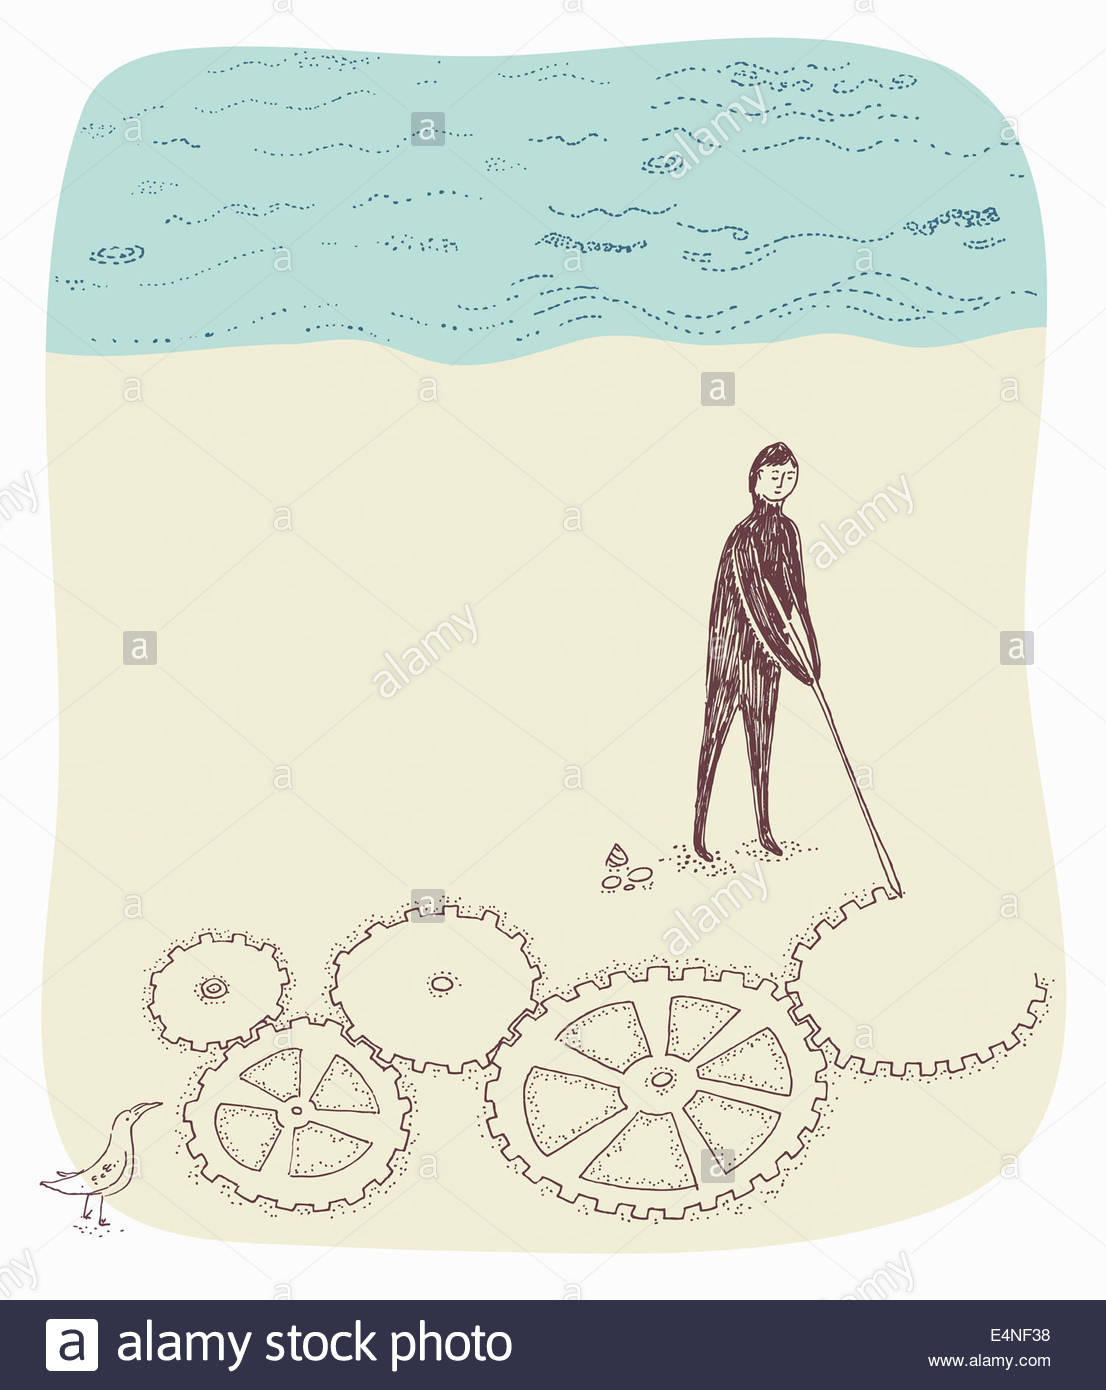 Man drawing connected cogs in sand on beach - Stock Image